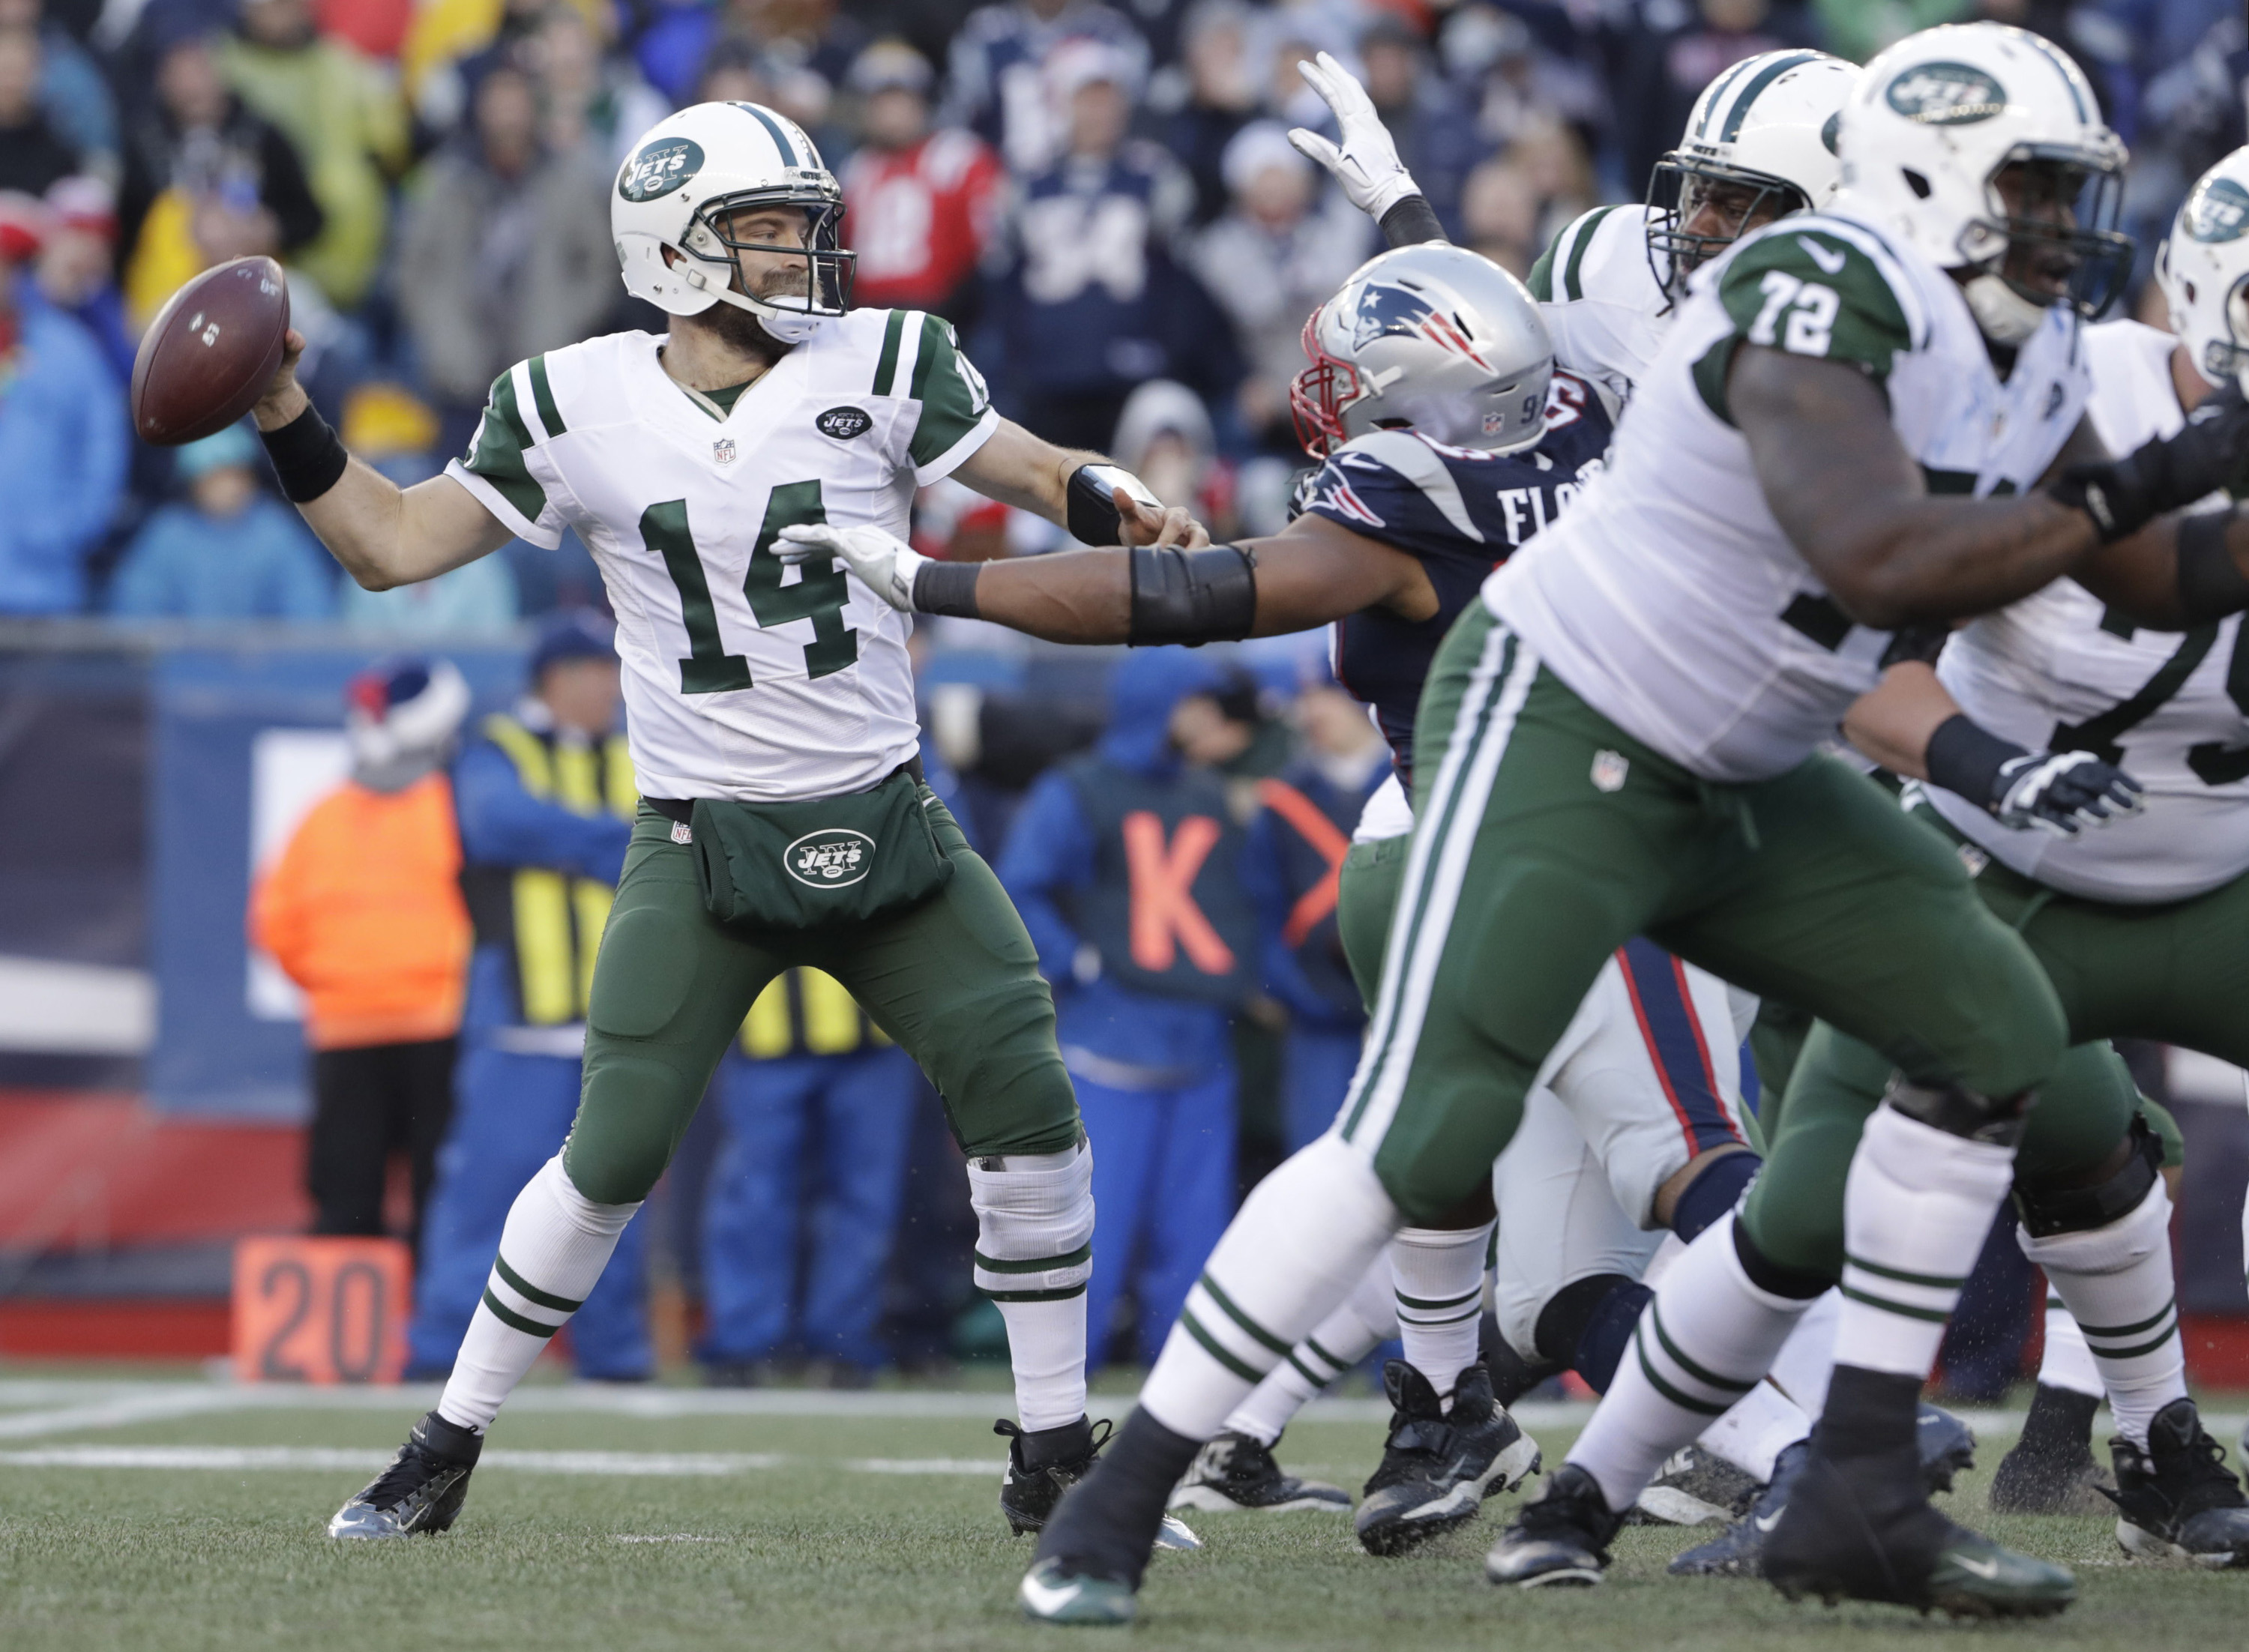 9767028-nfl-new-york-jets-at-new-england-patriots